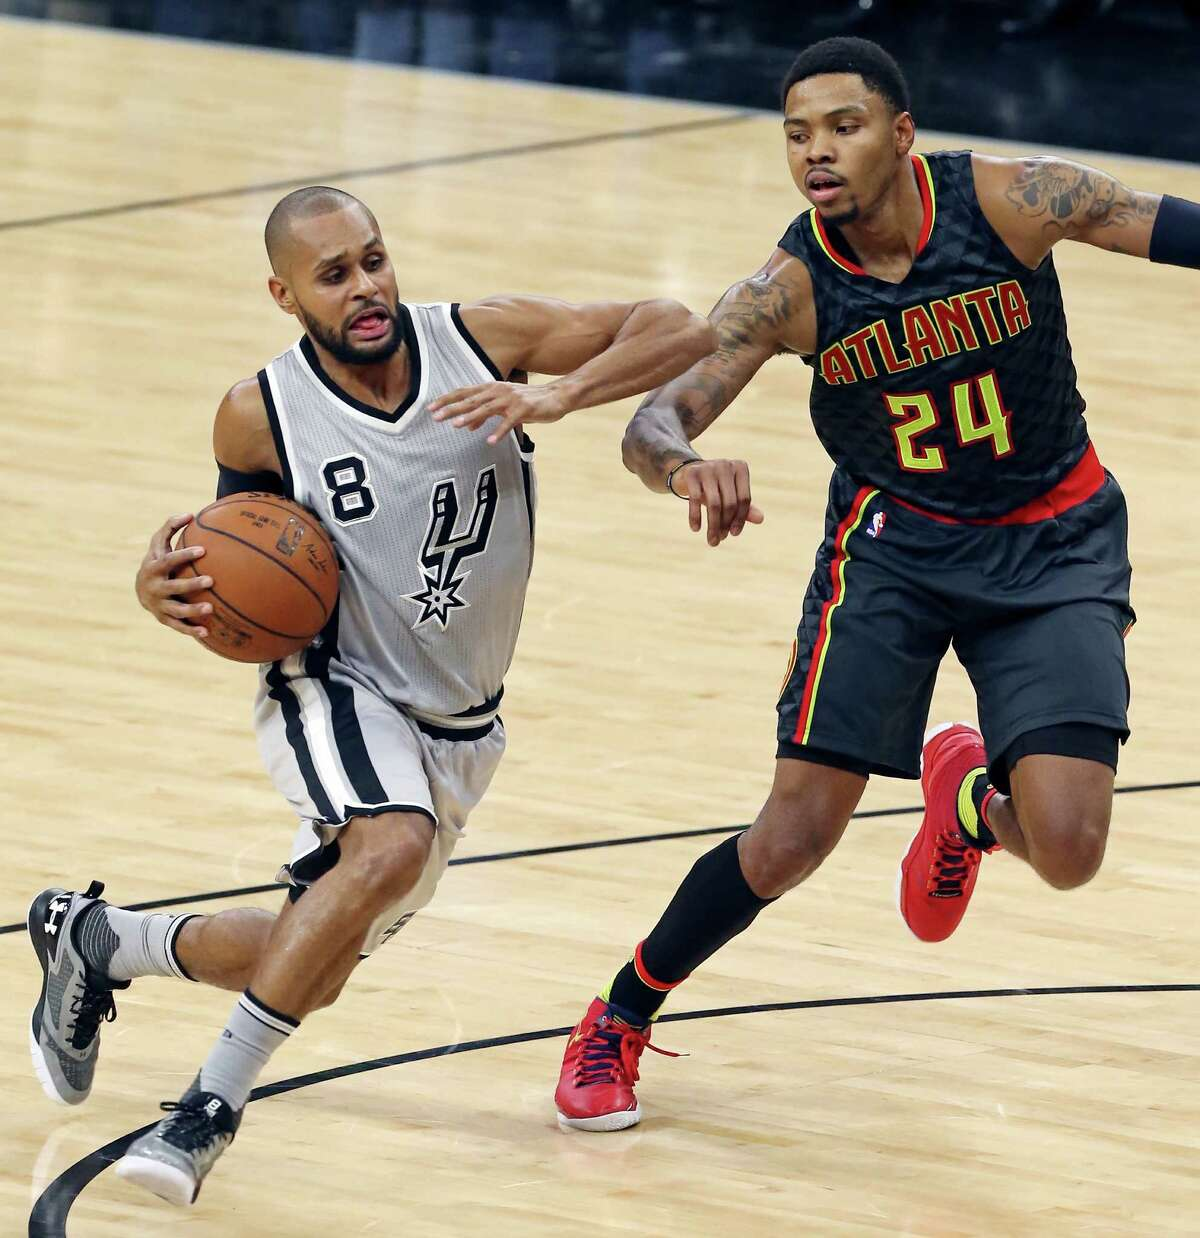 San Antonio Spurs' Patty Mills drives around Atlanta Hawks' Kent Bazemore during second half action Saturday Nov. 28, 2015 at the AT&T Center. The Spurs won 108-88.